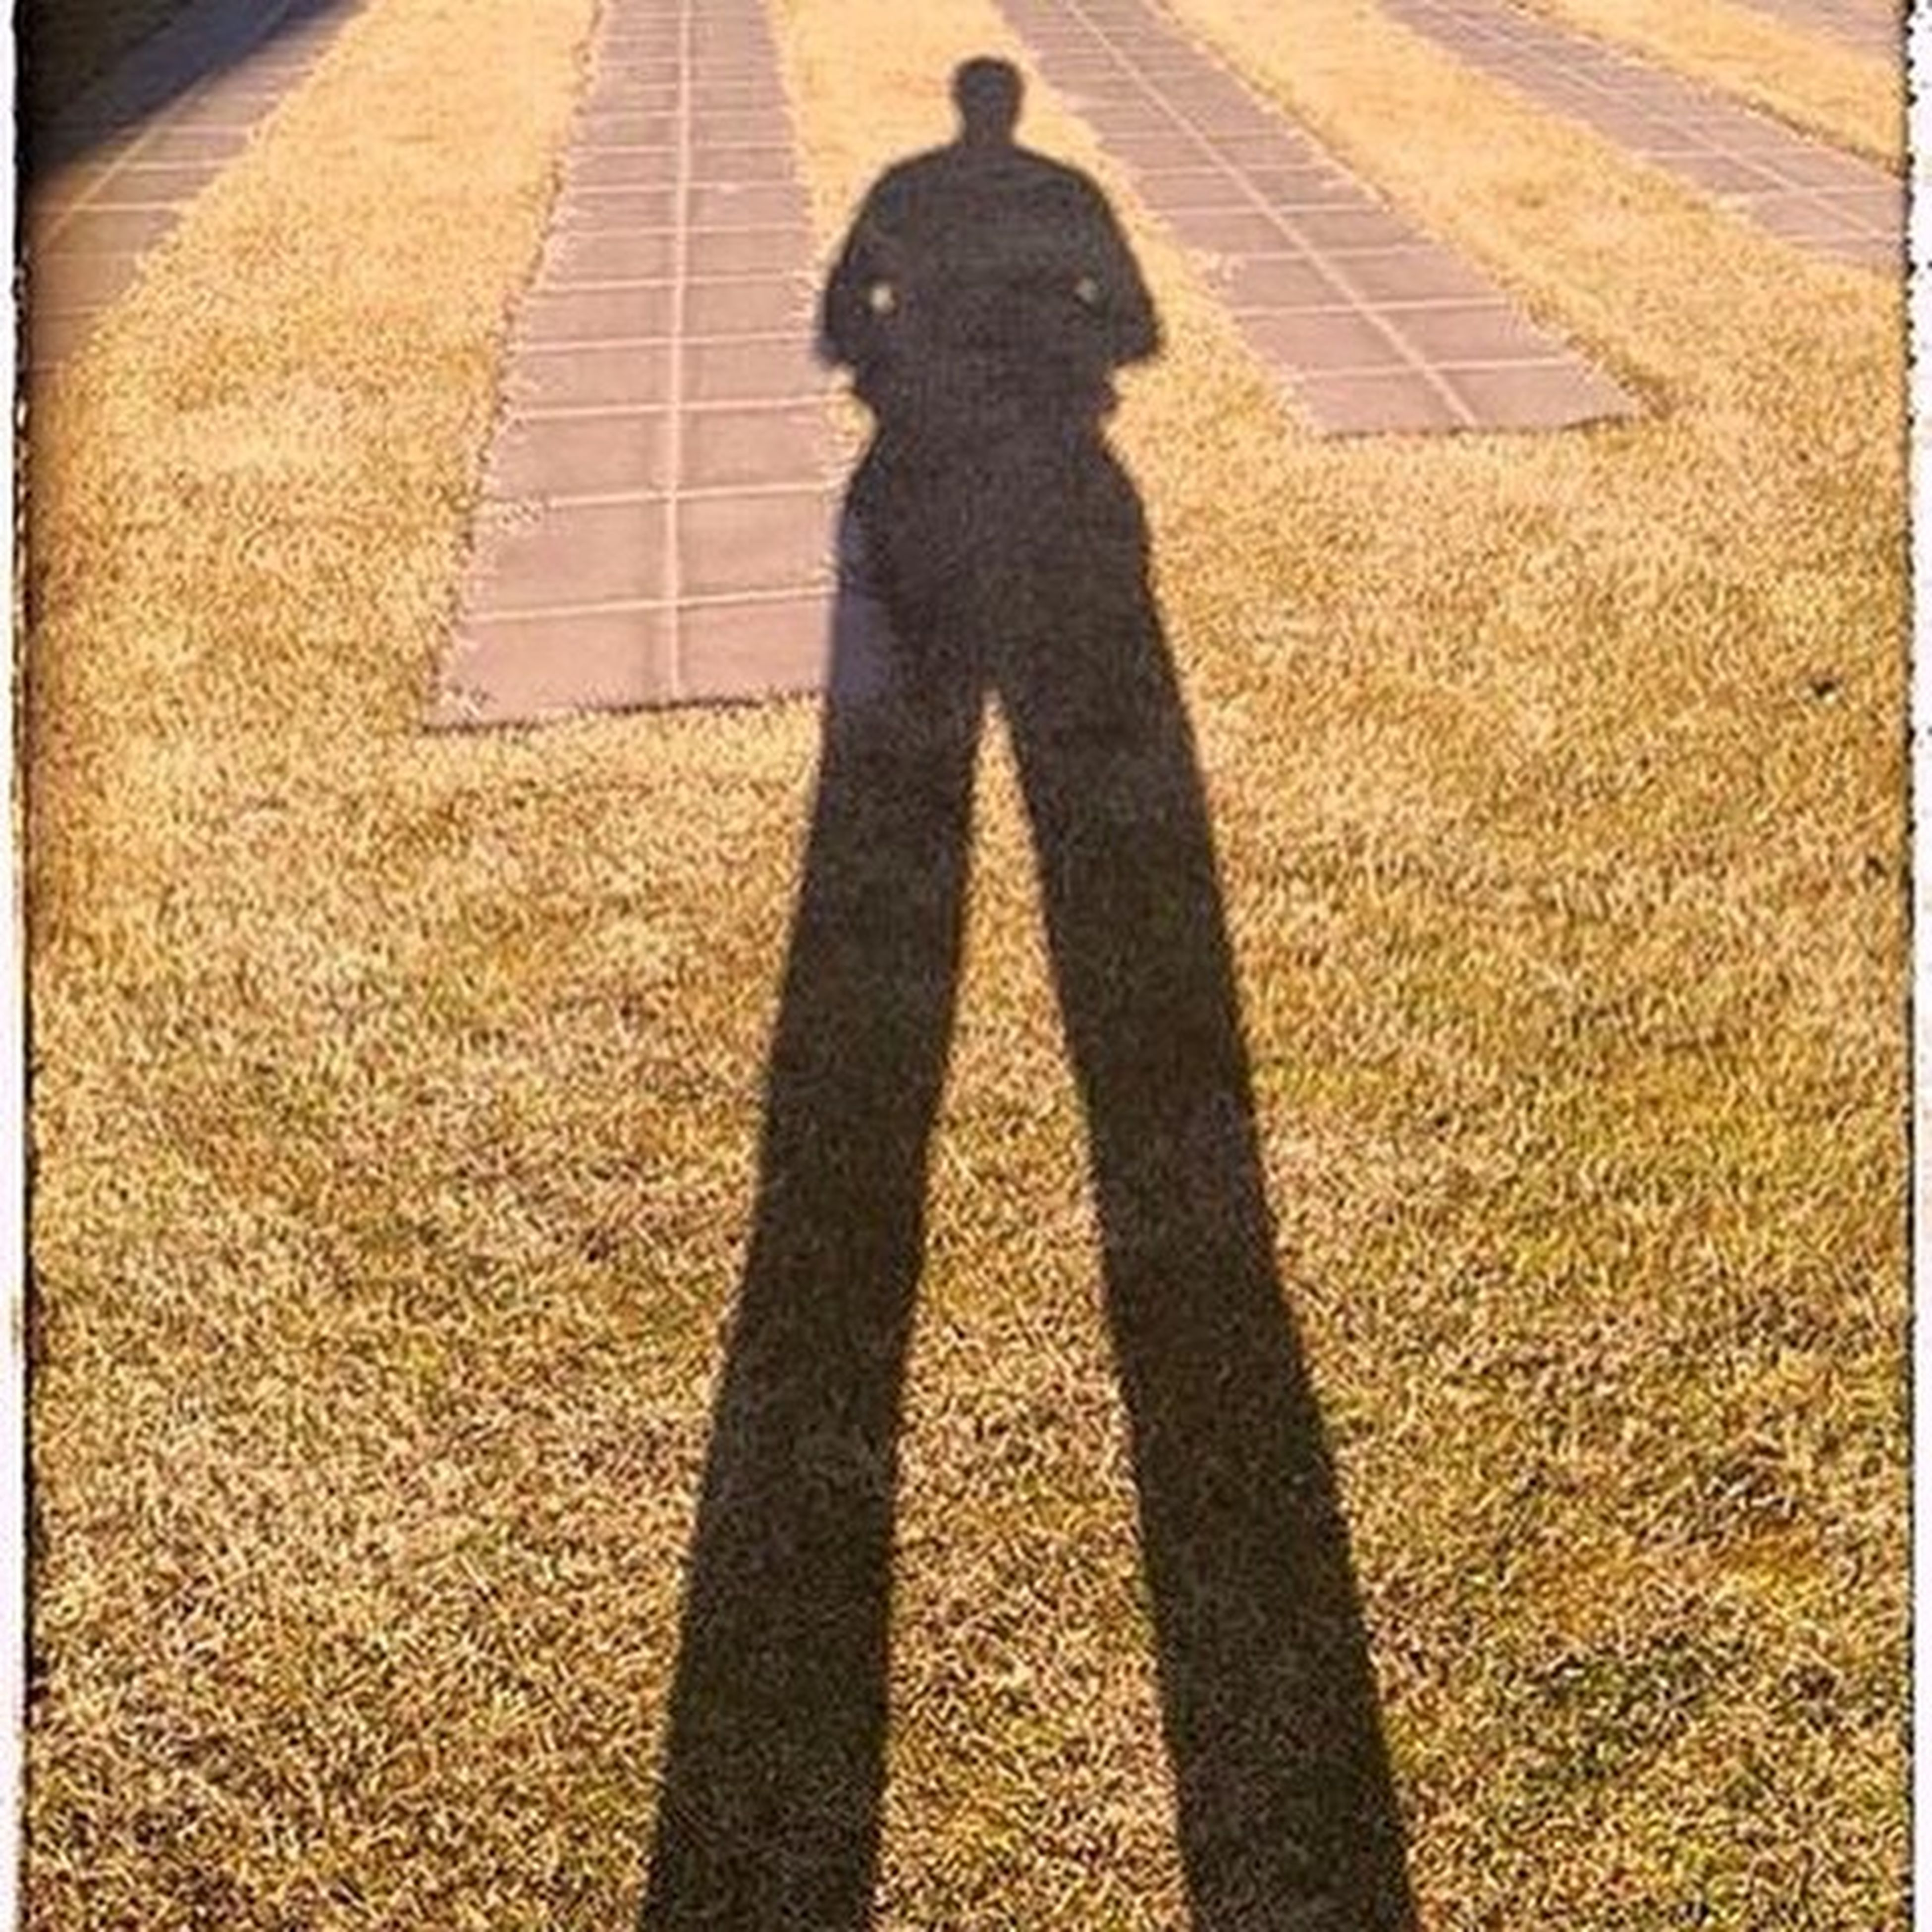 shadow, focus on shadow, sunlight, high angle view, lifestyles, street, leisure activity, unrecognizable person, standing, walking, men, road, day, outdoors, low section, auto post production filter, sunny, road marking